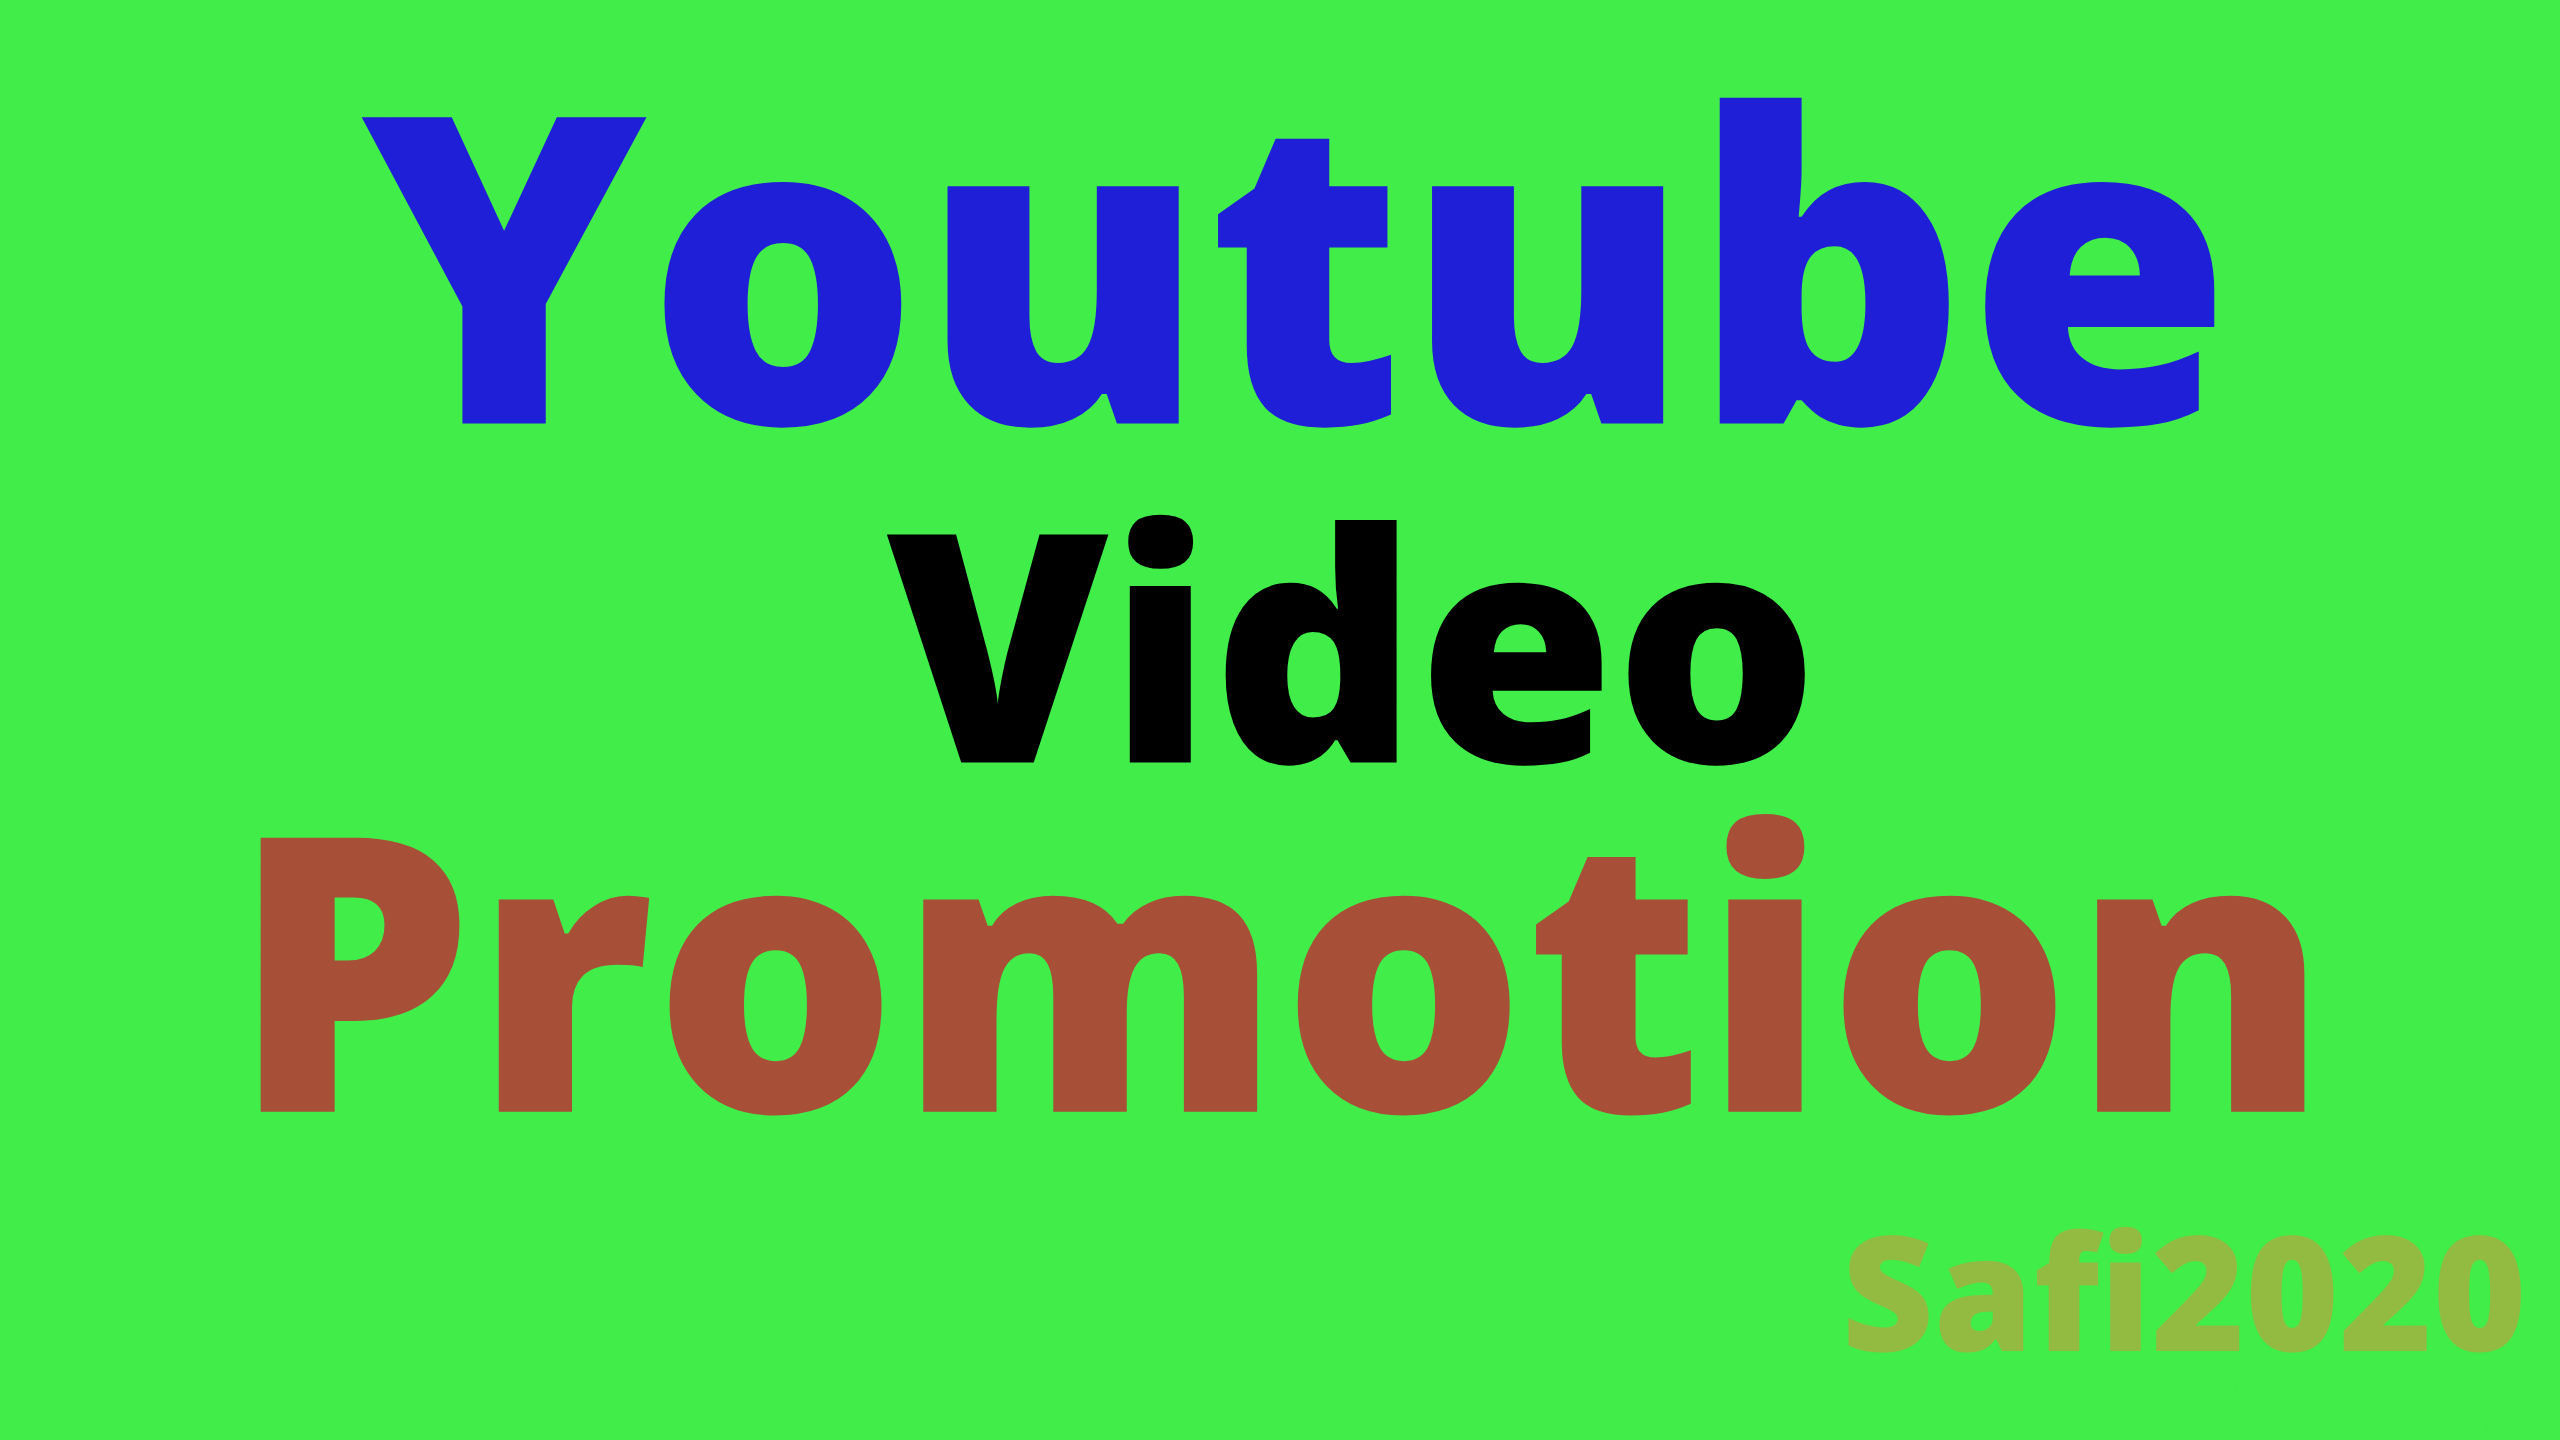 Organic you tube video marketing promotion & via active user